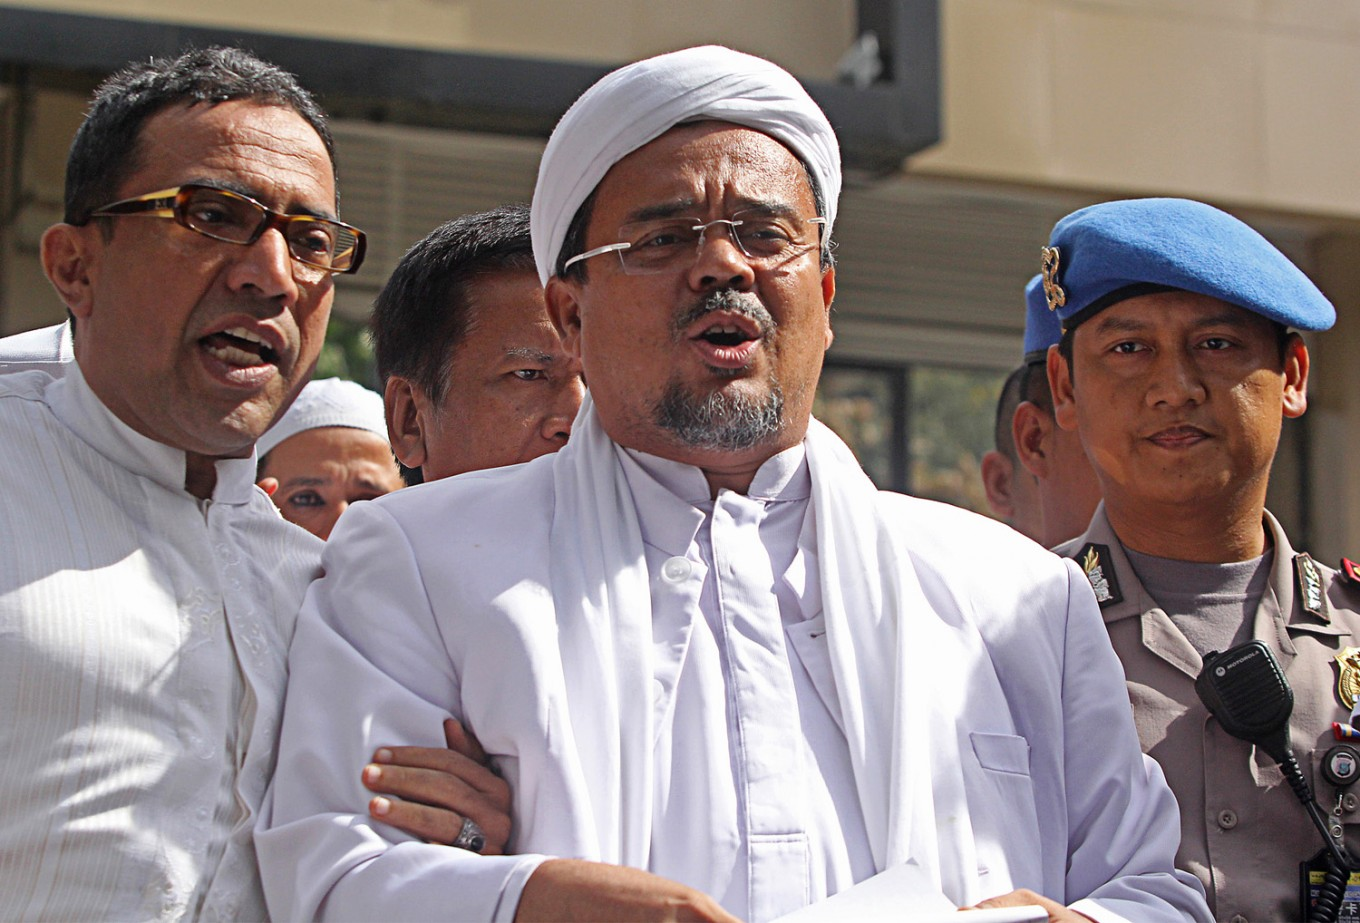 'If he wants to come home, just come home': Jokowi aide says about Rizieq